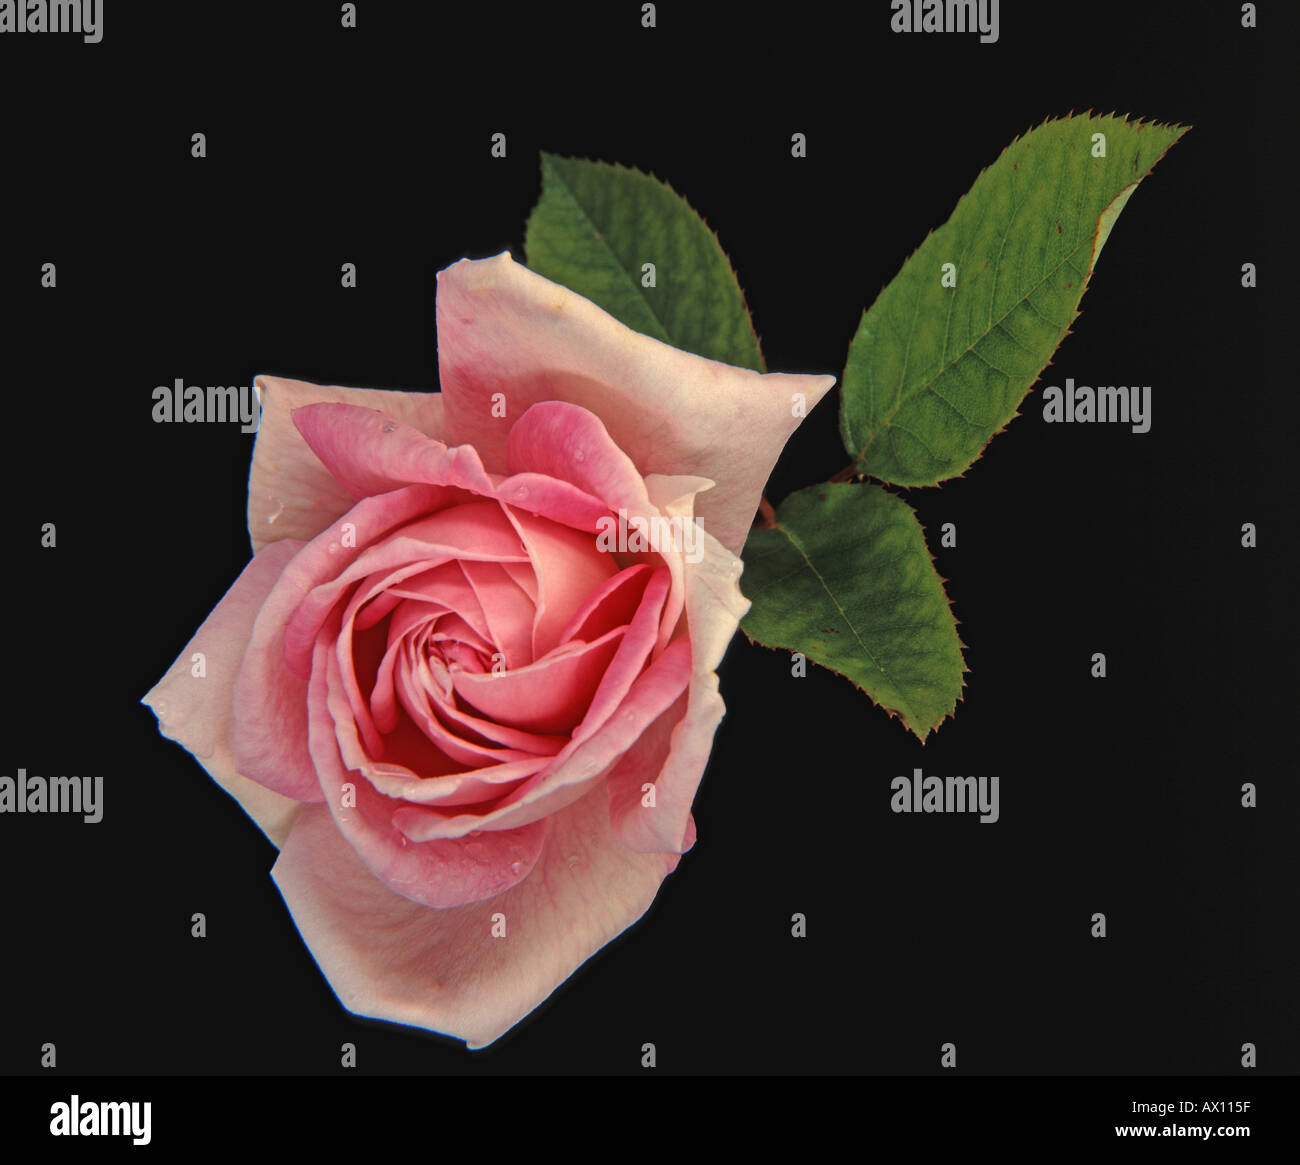 Pink Rose flower head with leaves - Stock Image